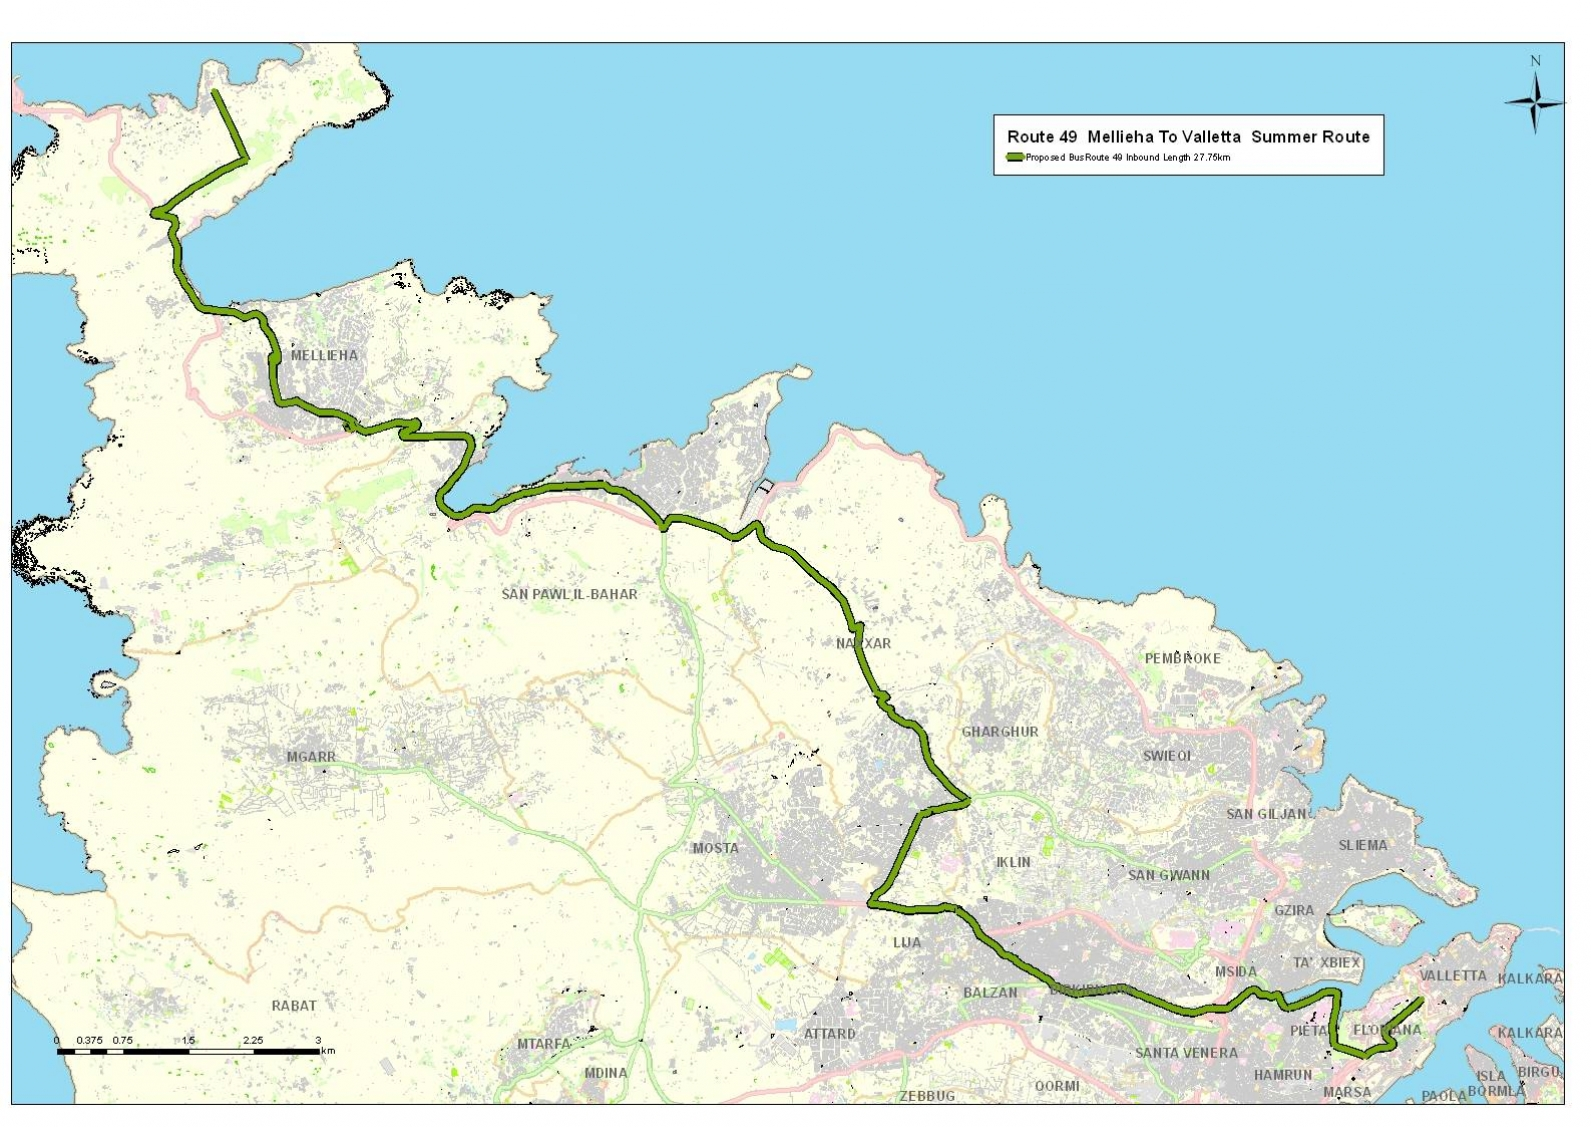 Land-current-network-routes-and-schedules-Summer-routes-3